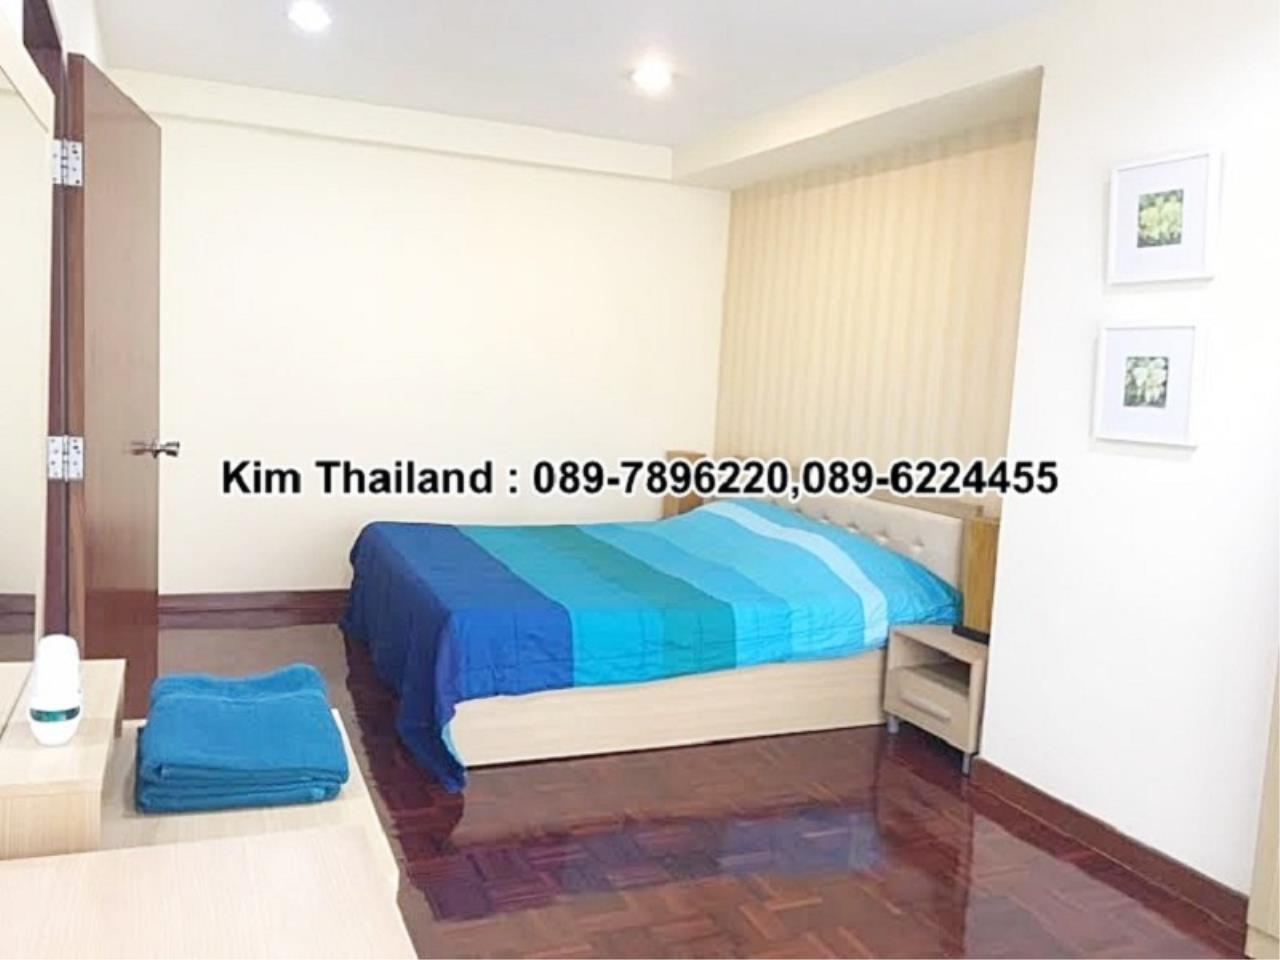 BKKcondorental Agency's For rent, Condo Saranjai Mansion. Area 63 sq.m. 1 bedroom. Rent 20,000baht/month 13